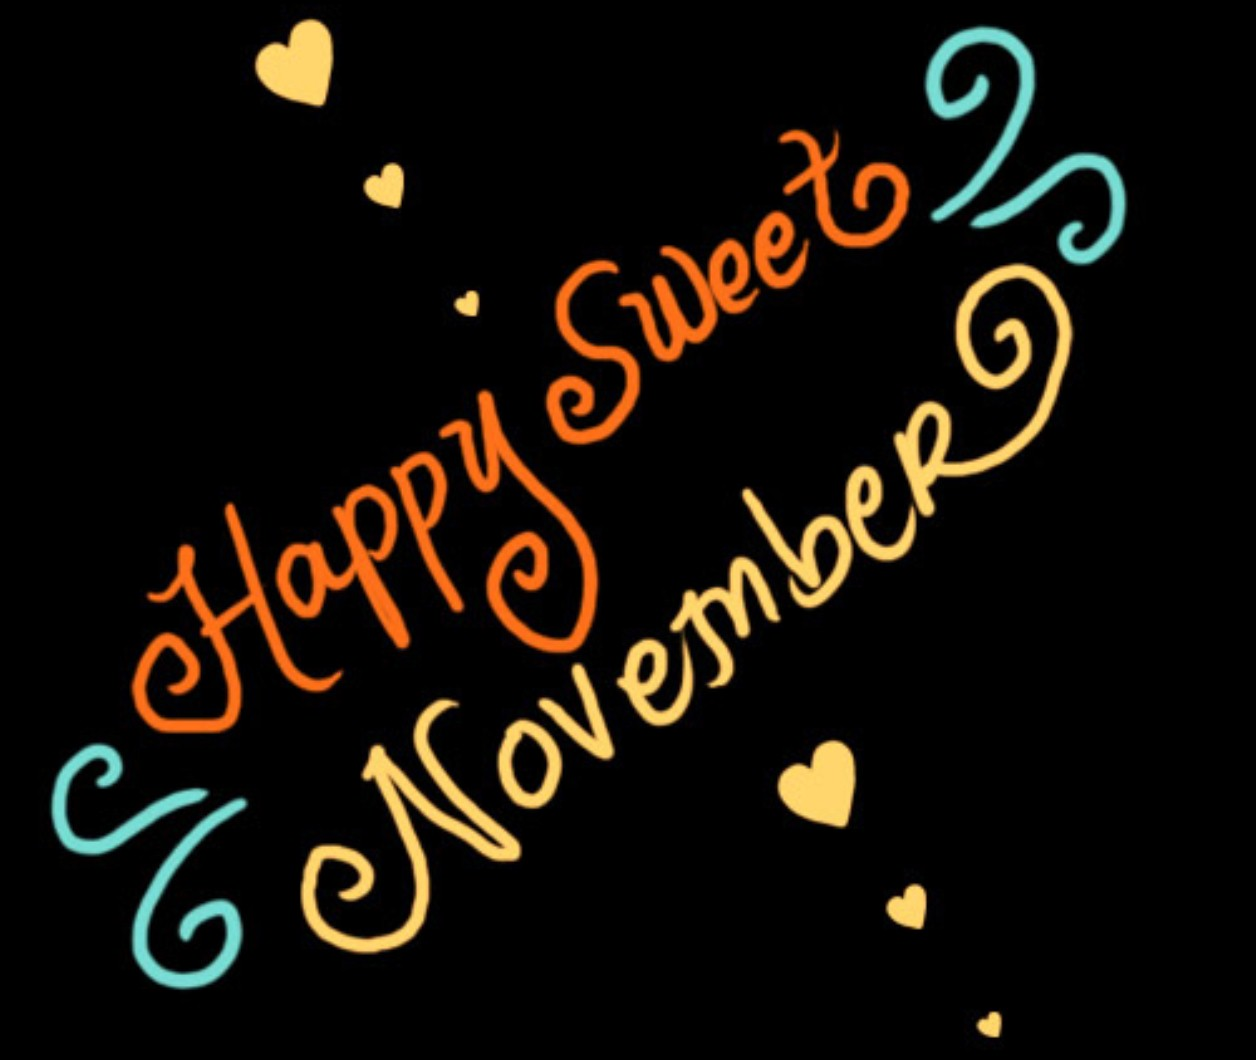 Watch - November Happy pictures video